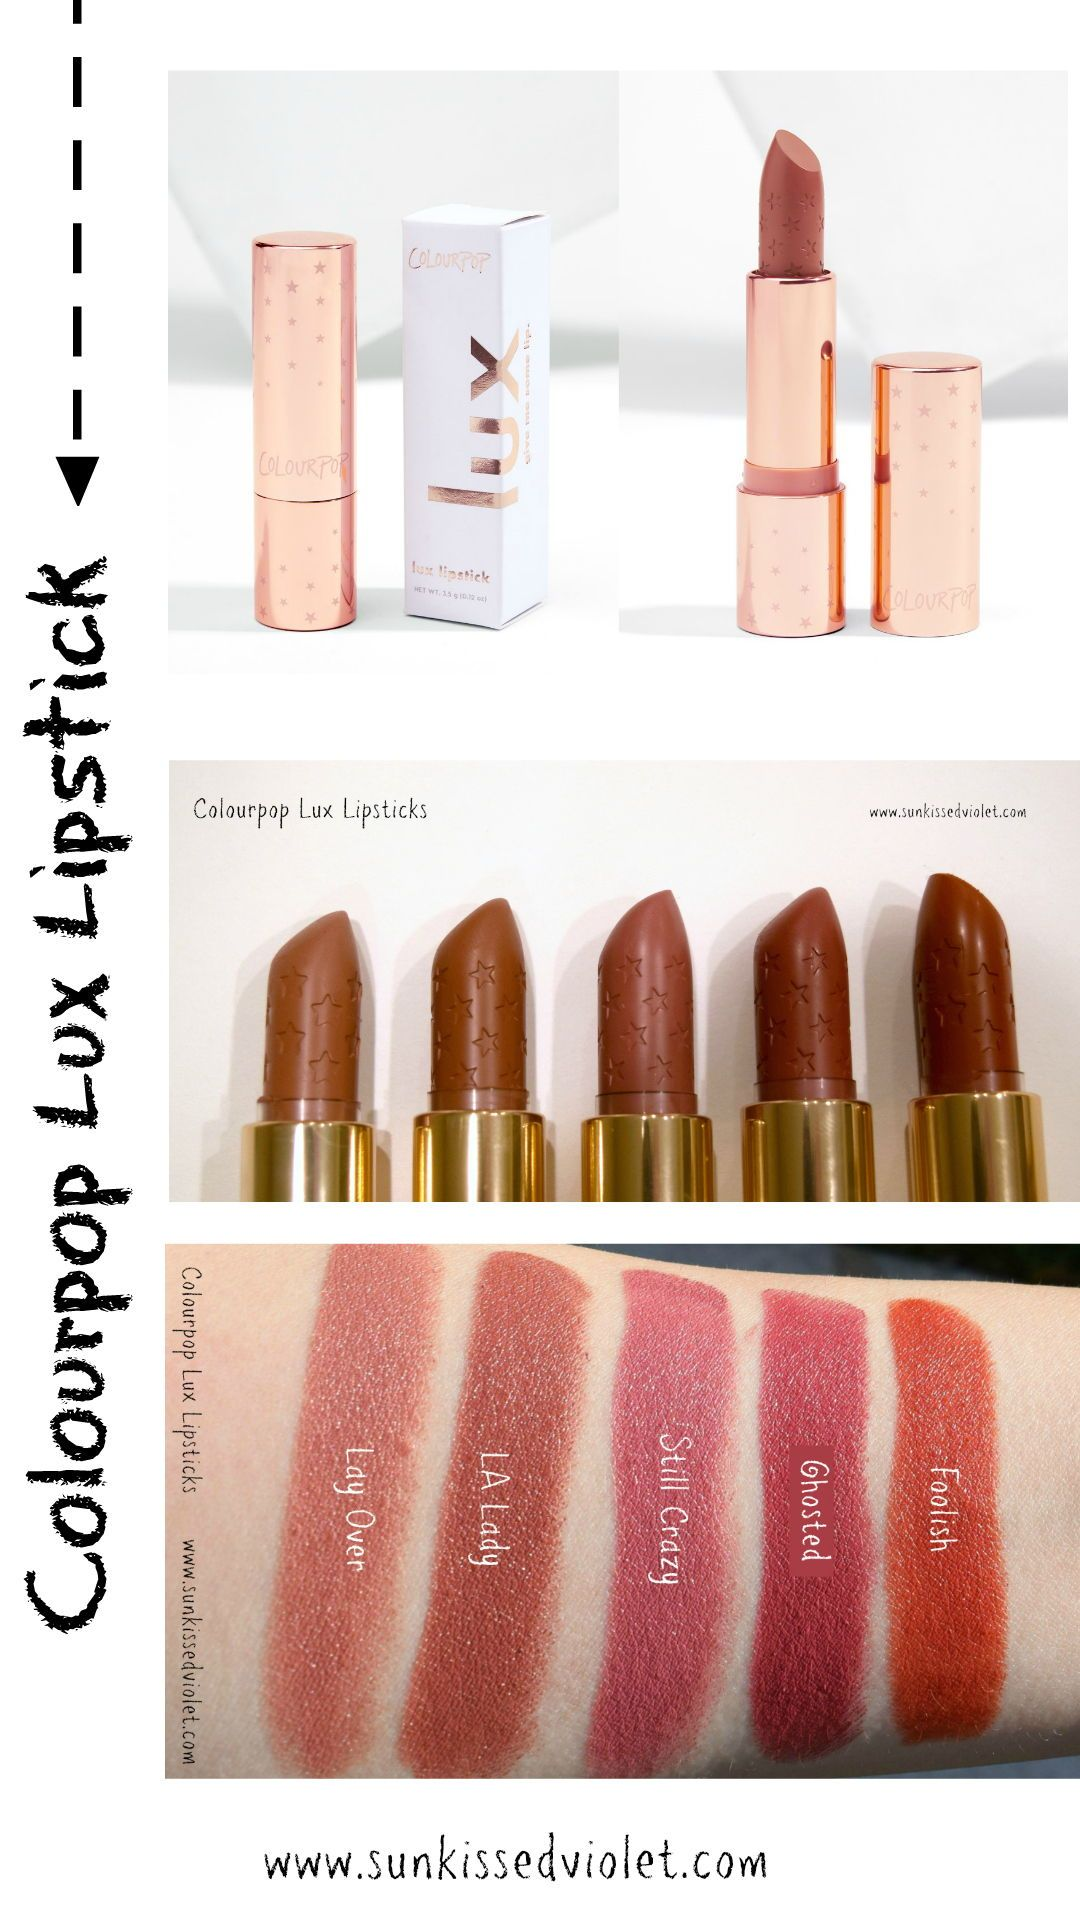 Colourpop Lux Lipsticks: Swatches, Reviews And Dupes